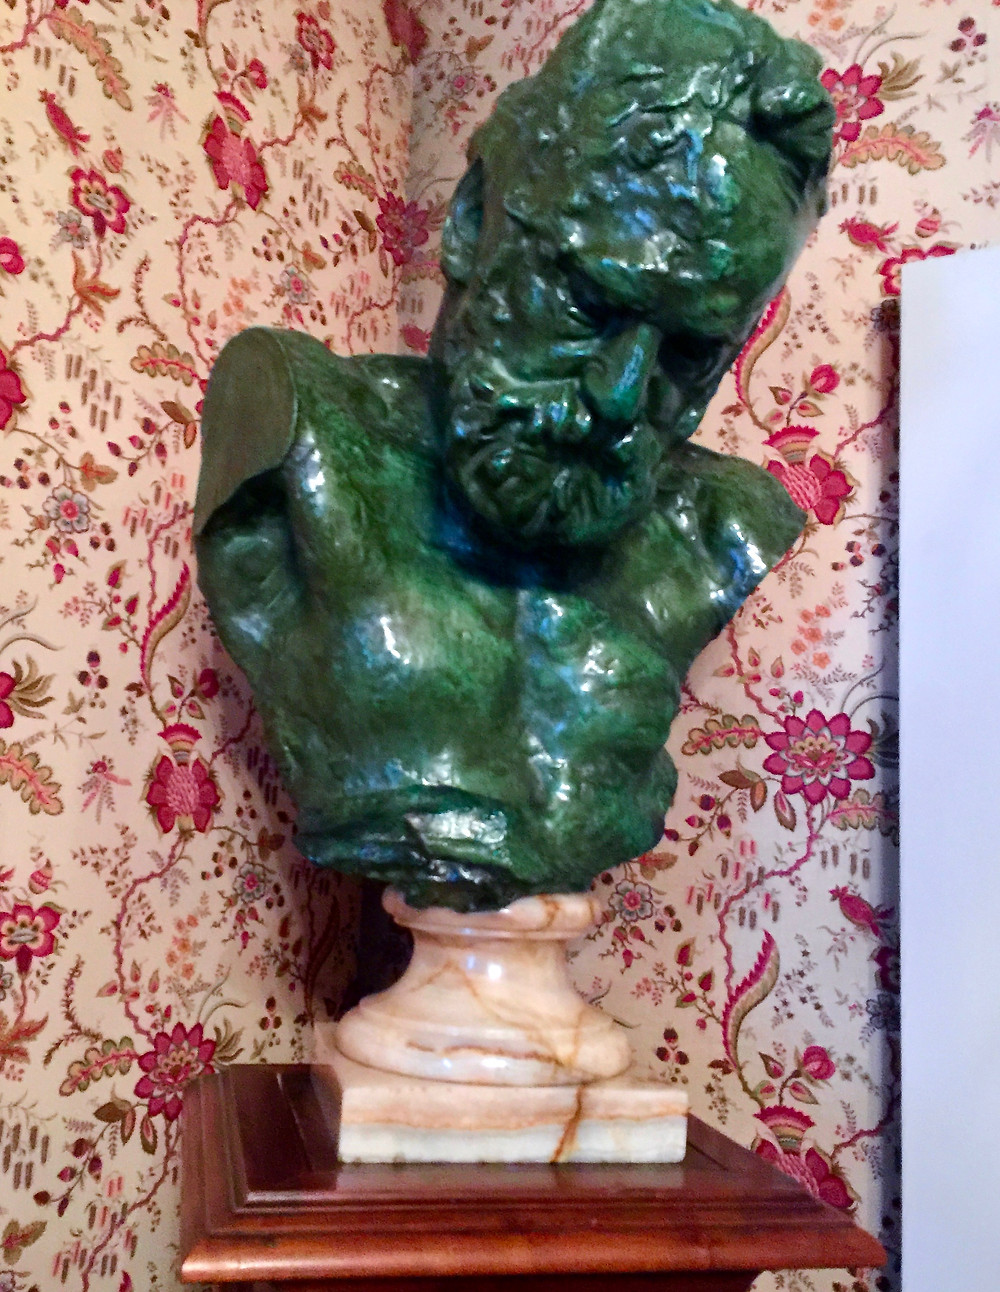 a bust of Victor Hugo by Auguste Rodin